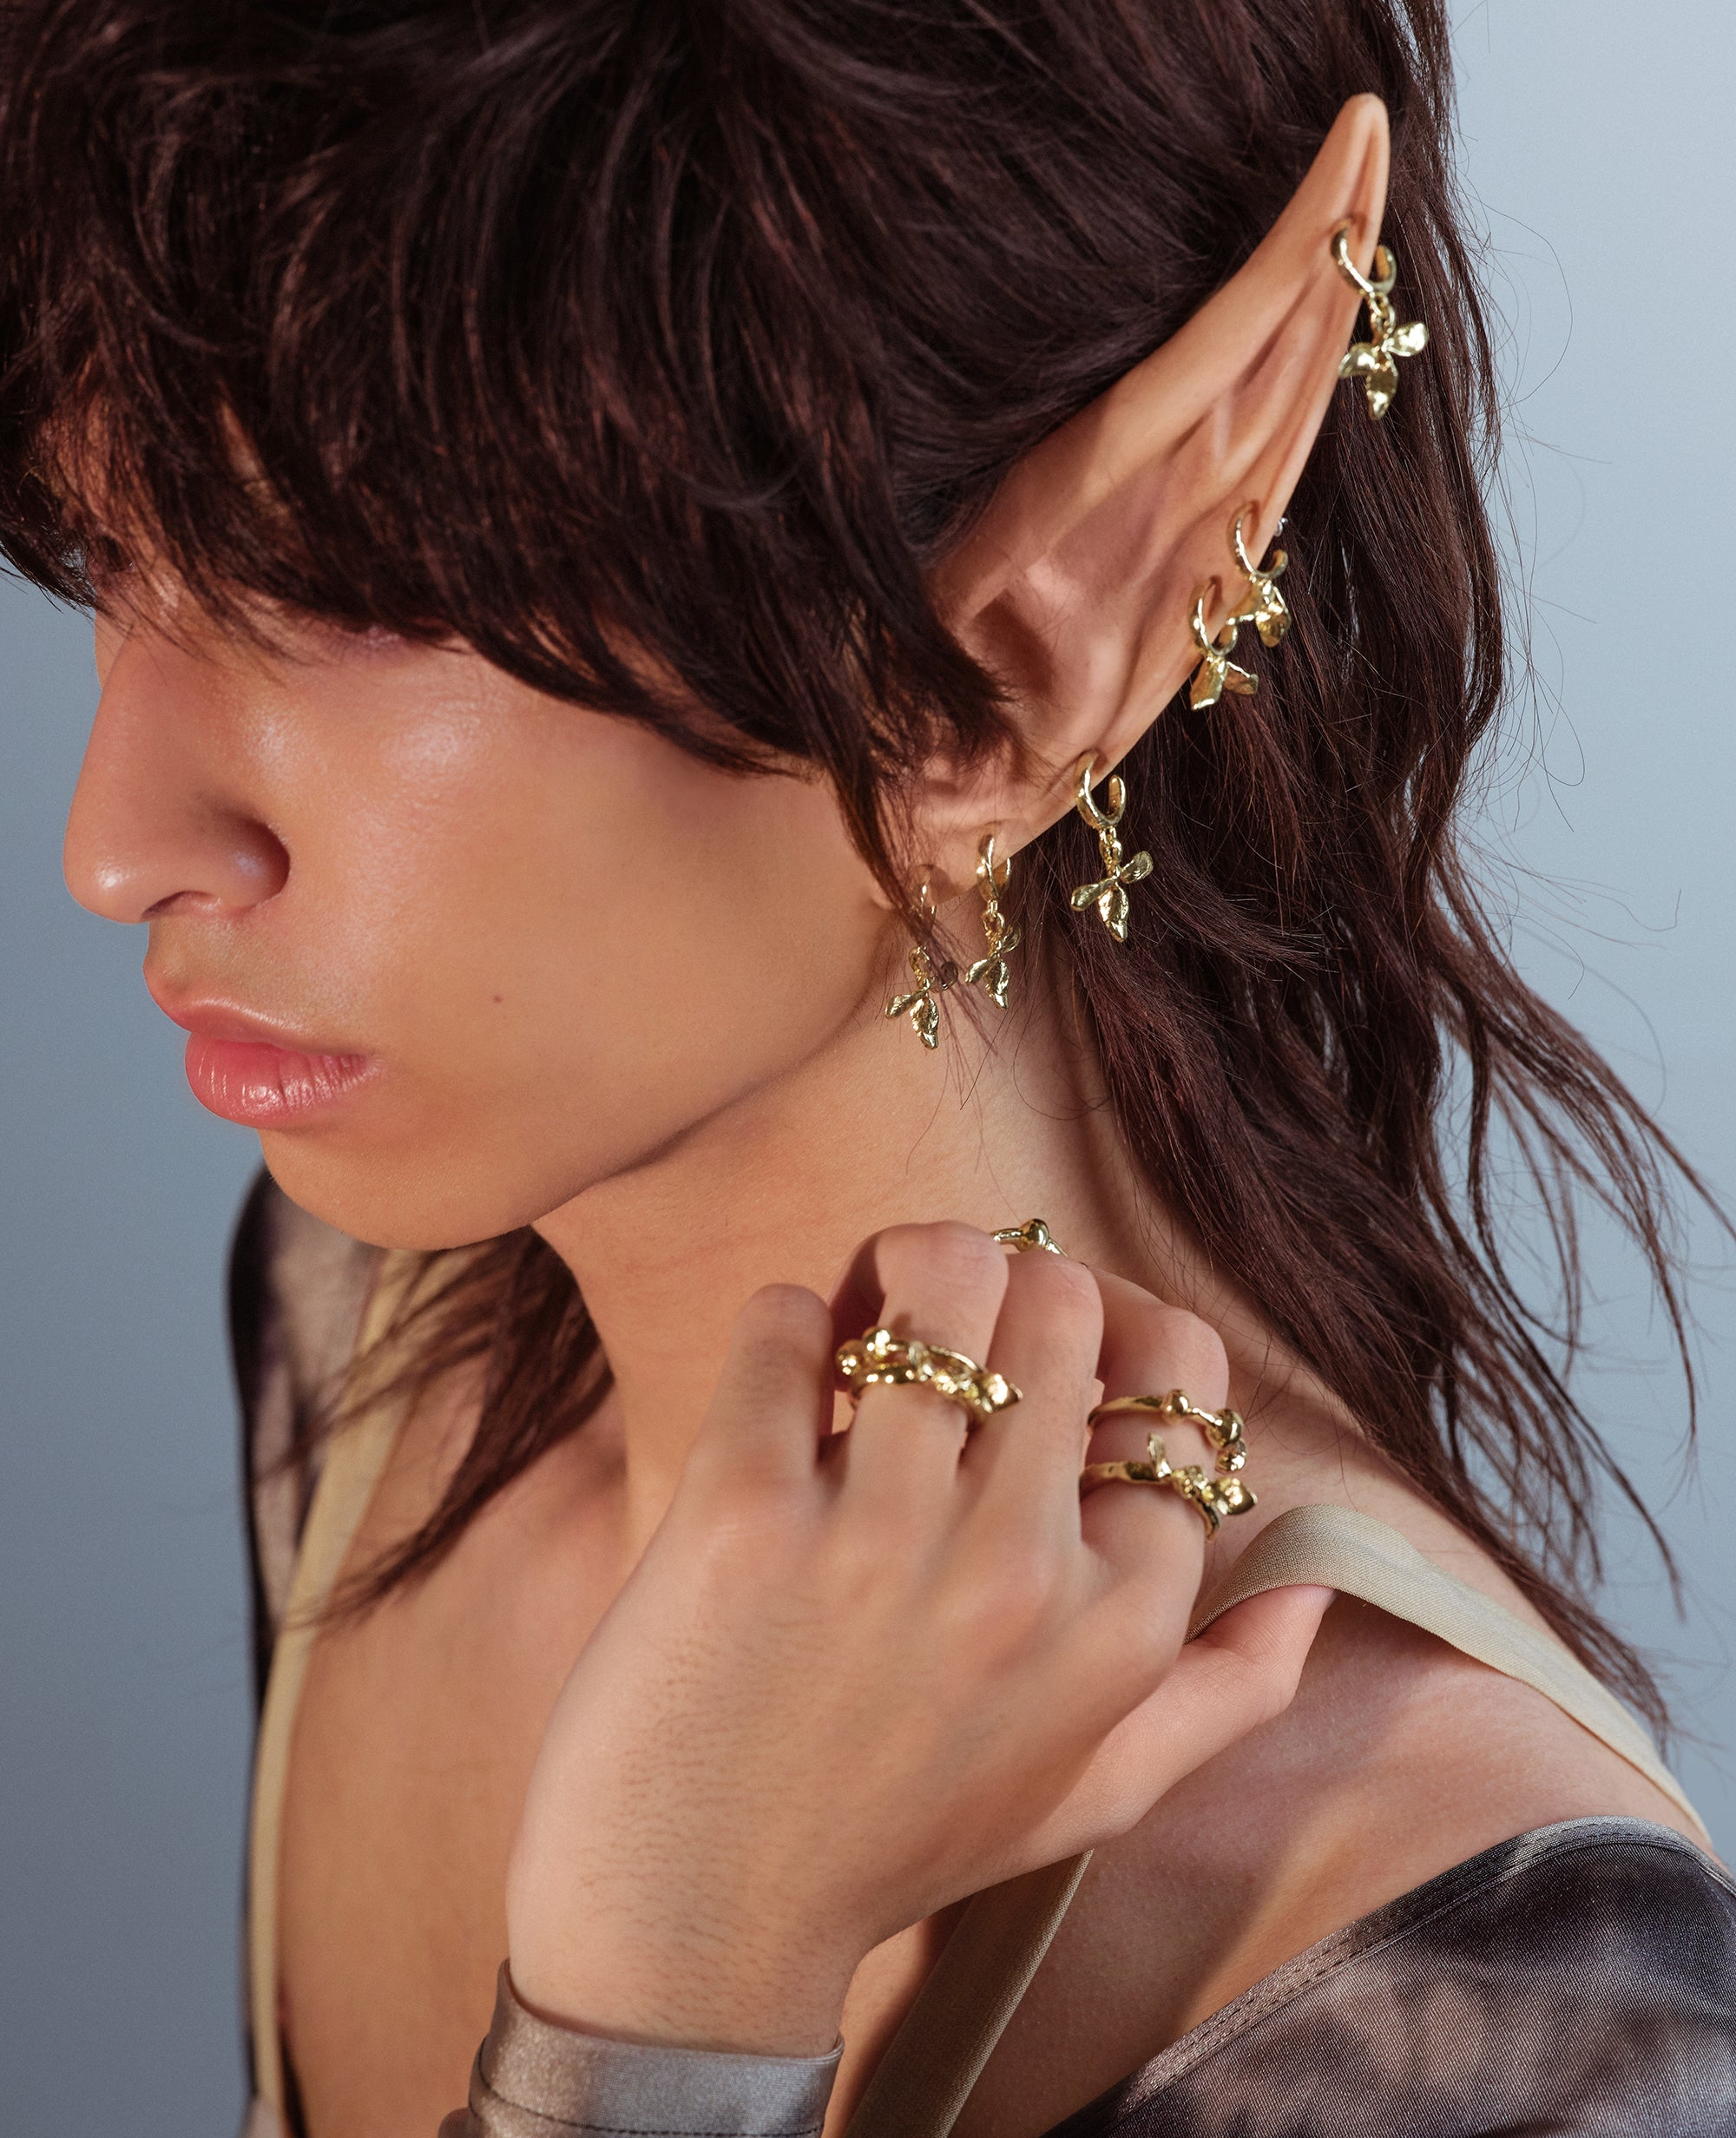 BLOOM // golden mini hoops - ORA-C jewelry - handmade jewelry by Montreal based independent designer Caroline Pham